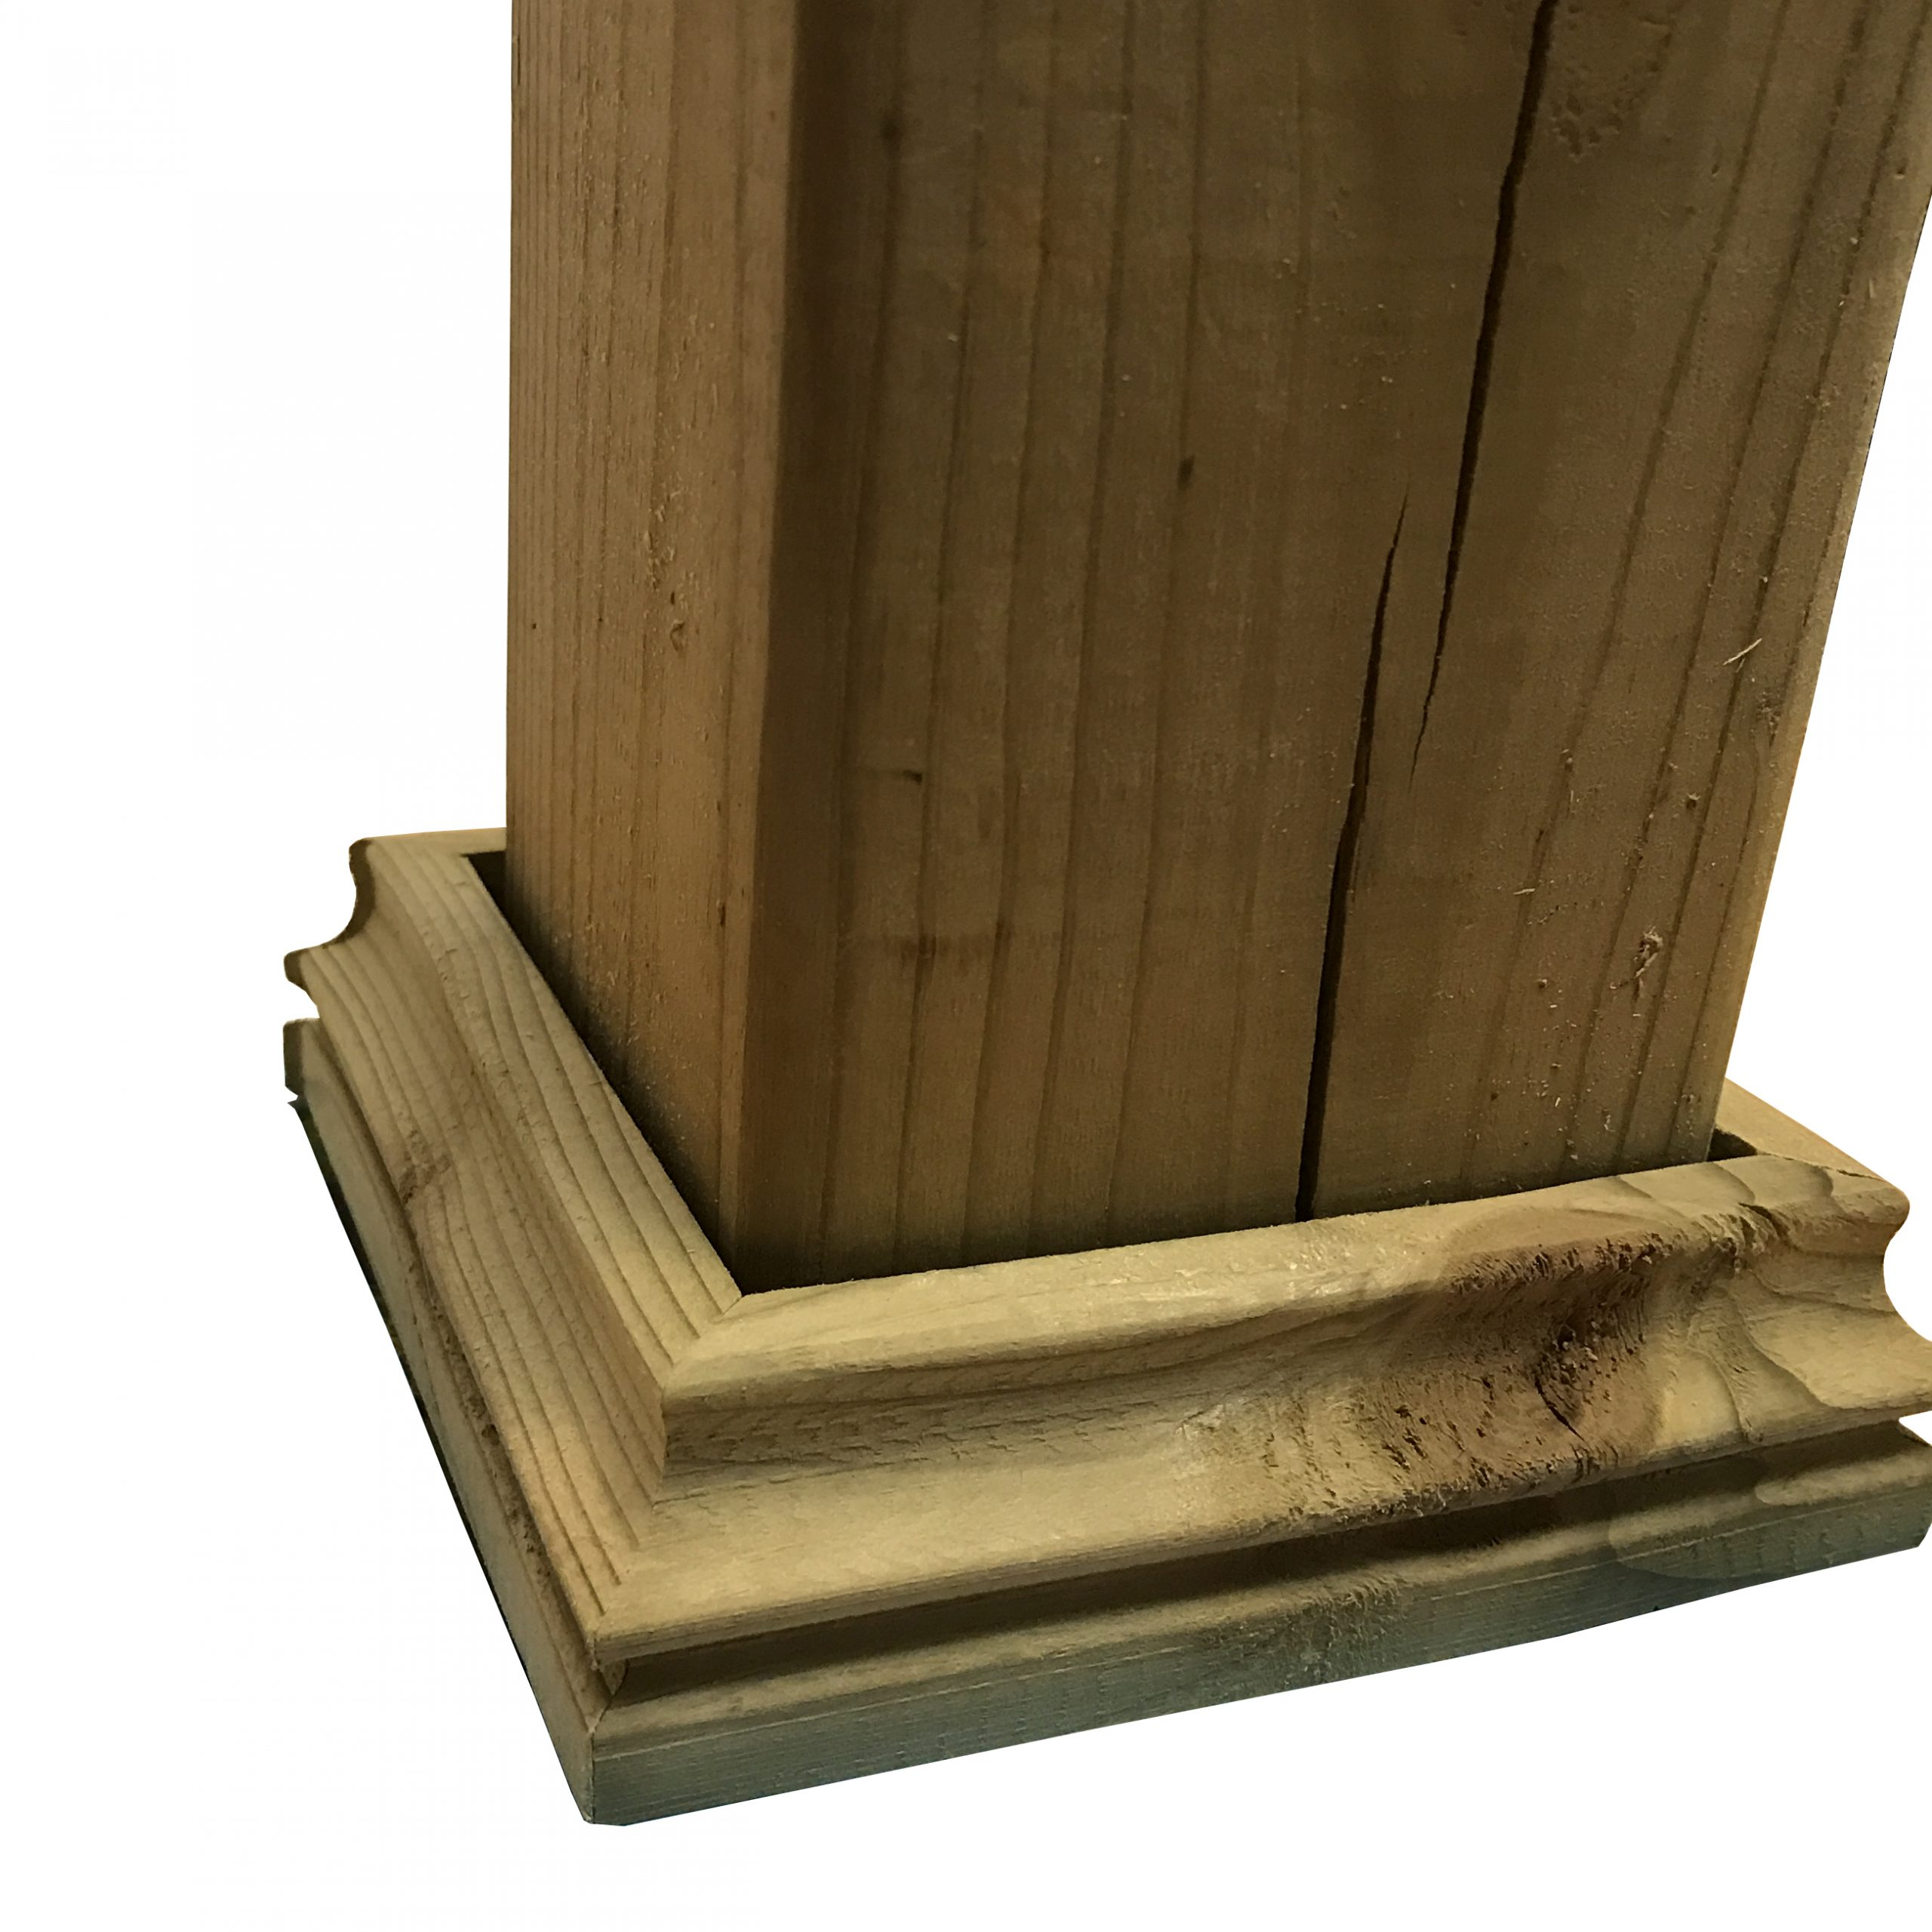 Cambium Pressure Treated Wood Decorative Post Base For